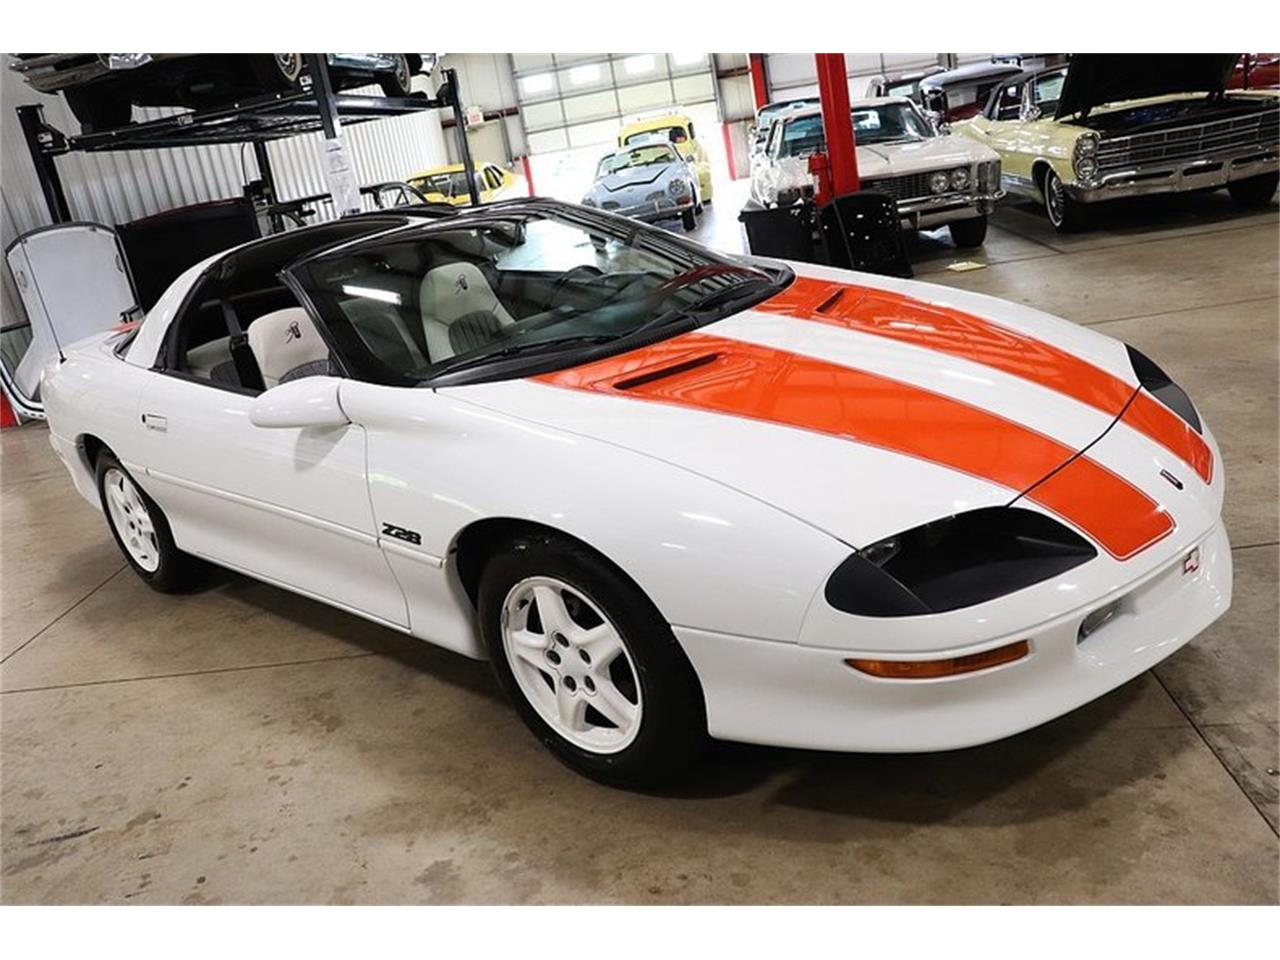 1997 Chevrolet Camaro Z28 for sale in Kentwood, MI – photo 90